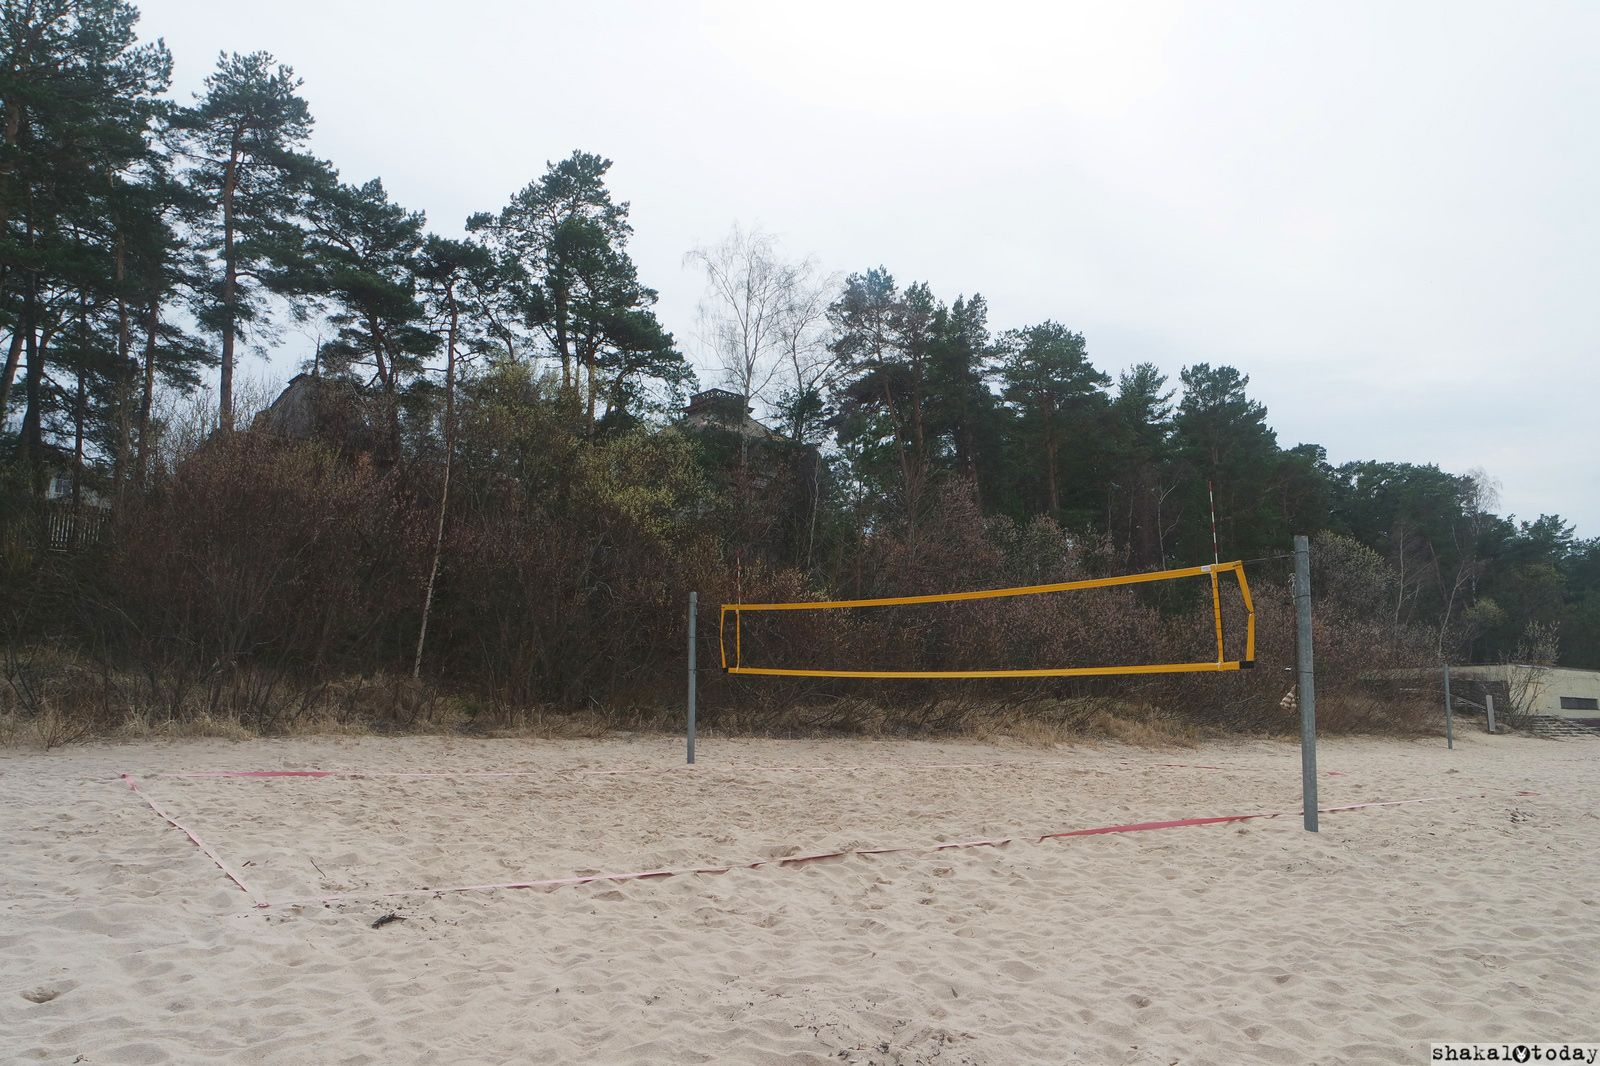 jurmala-shakal-today-0034.jpg